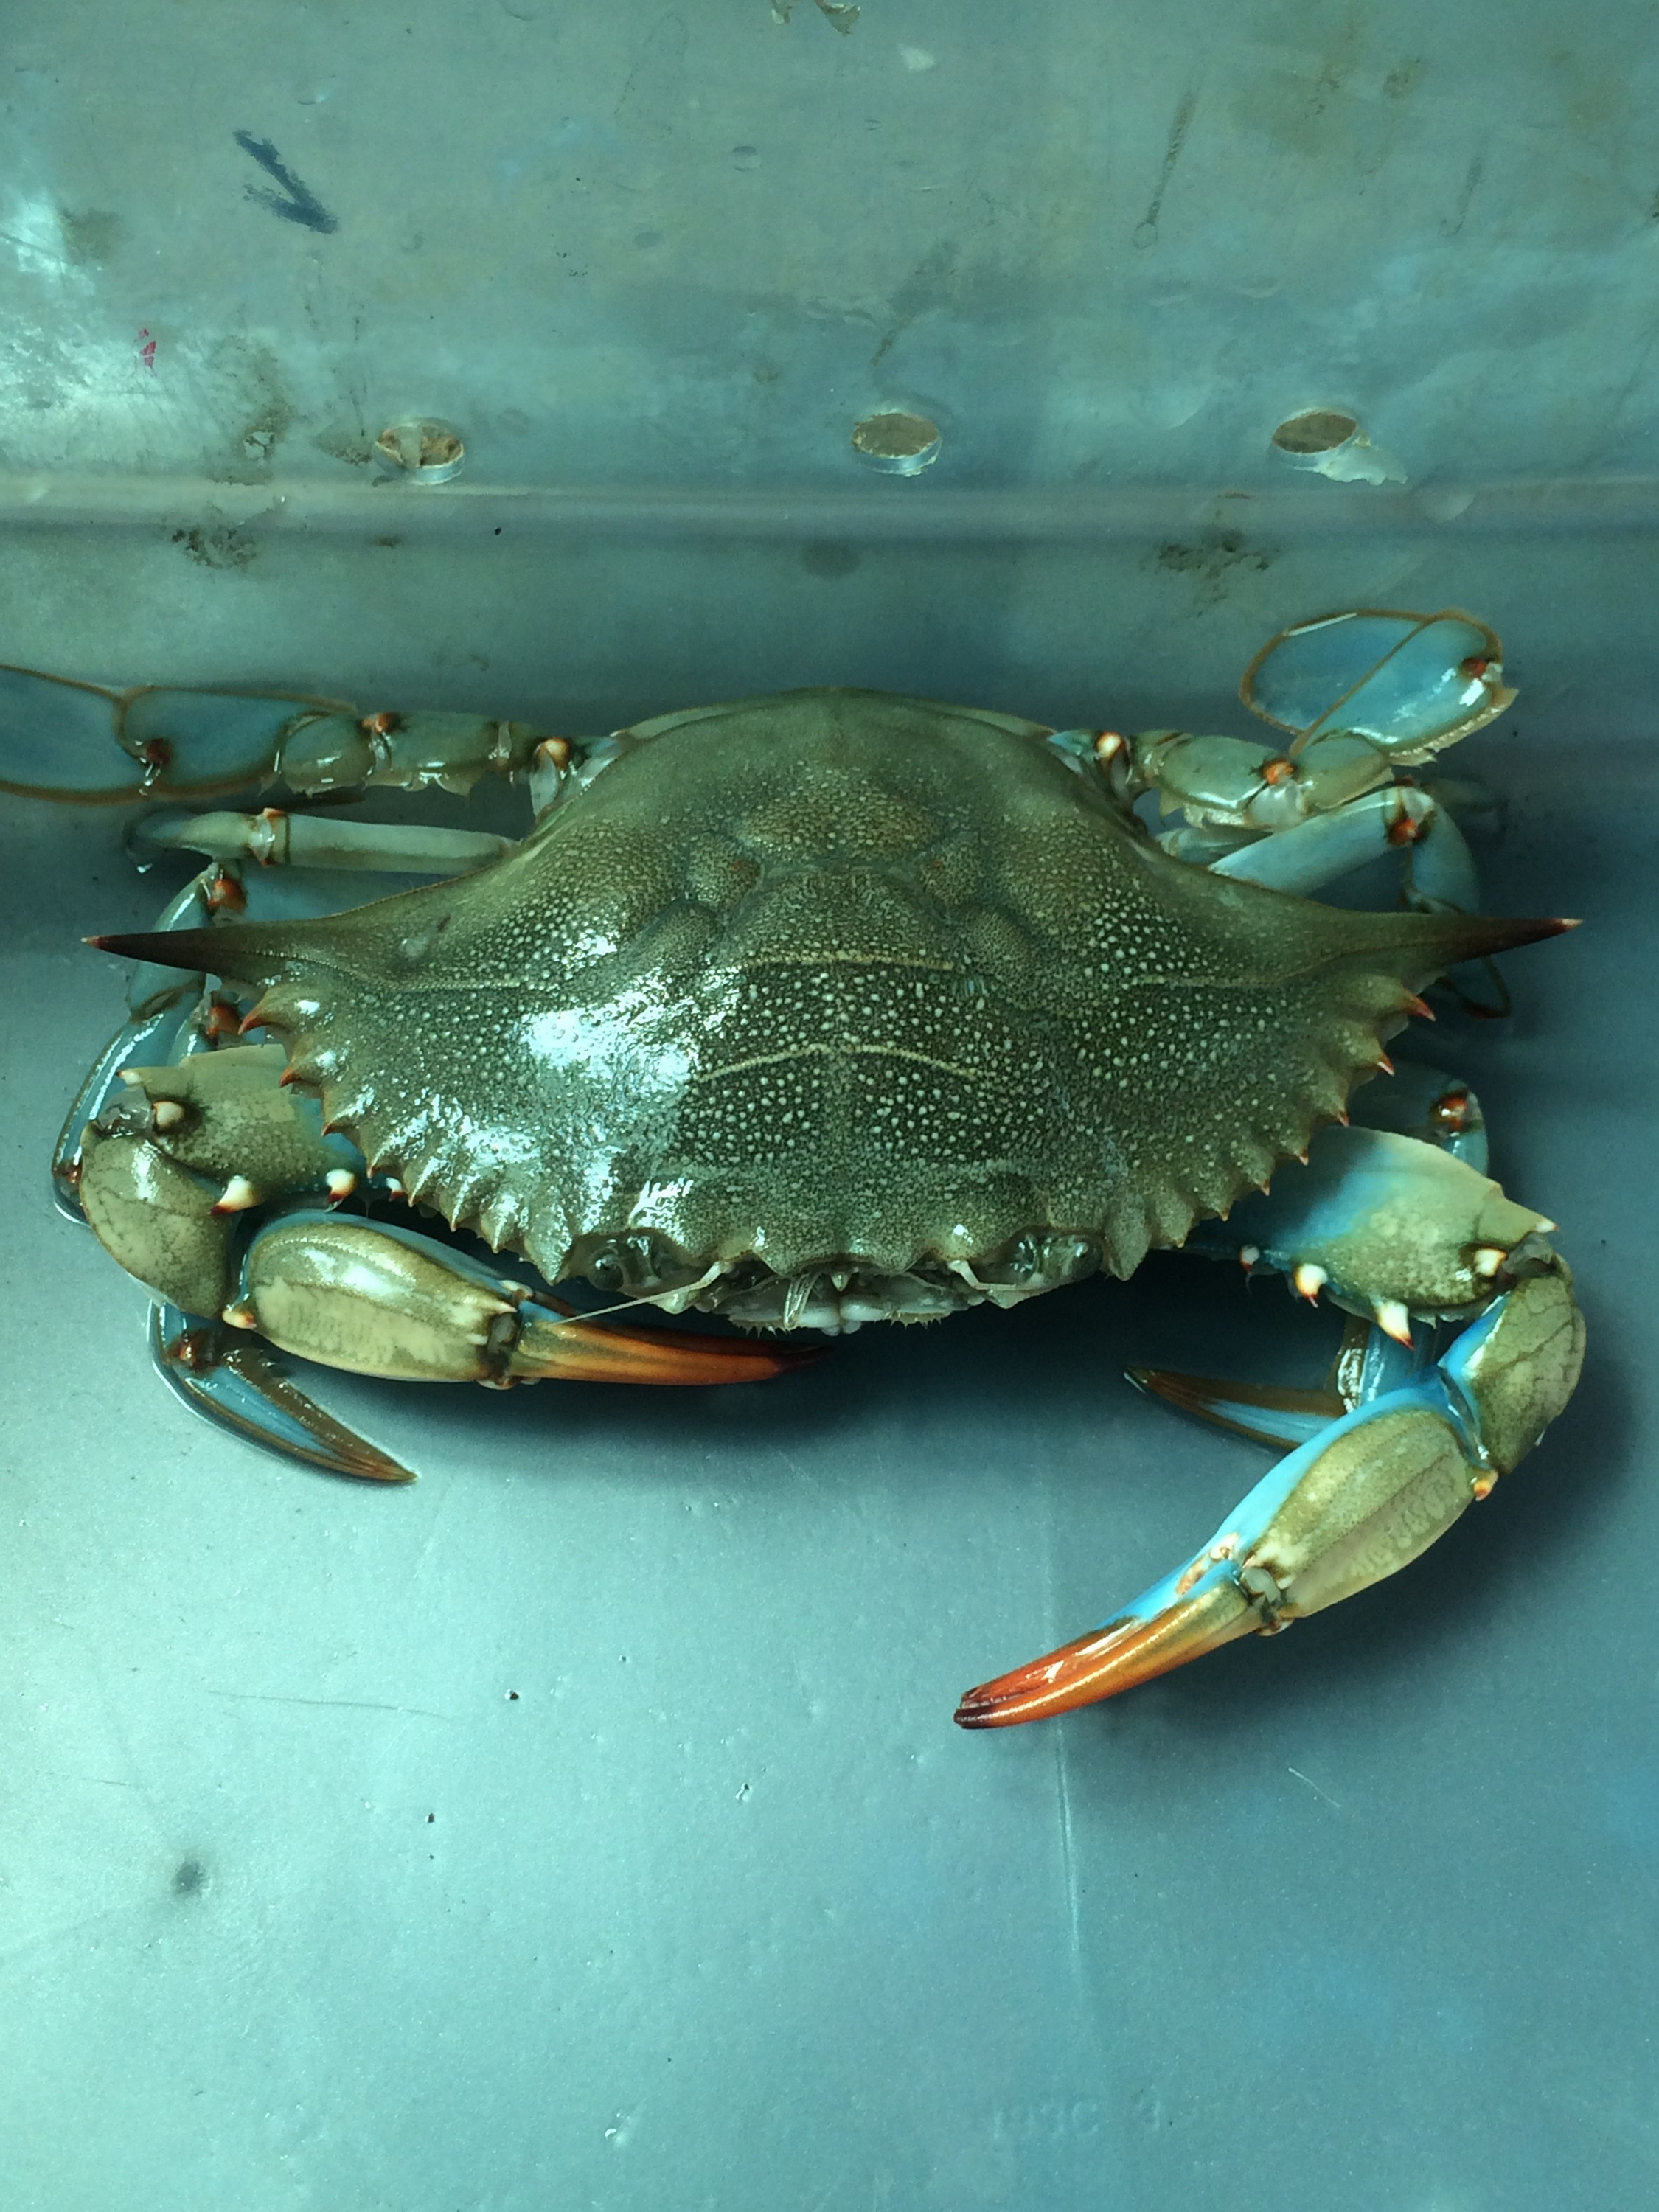 Blue crab in tank